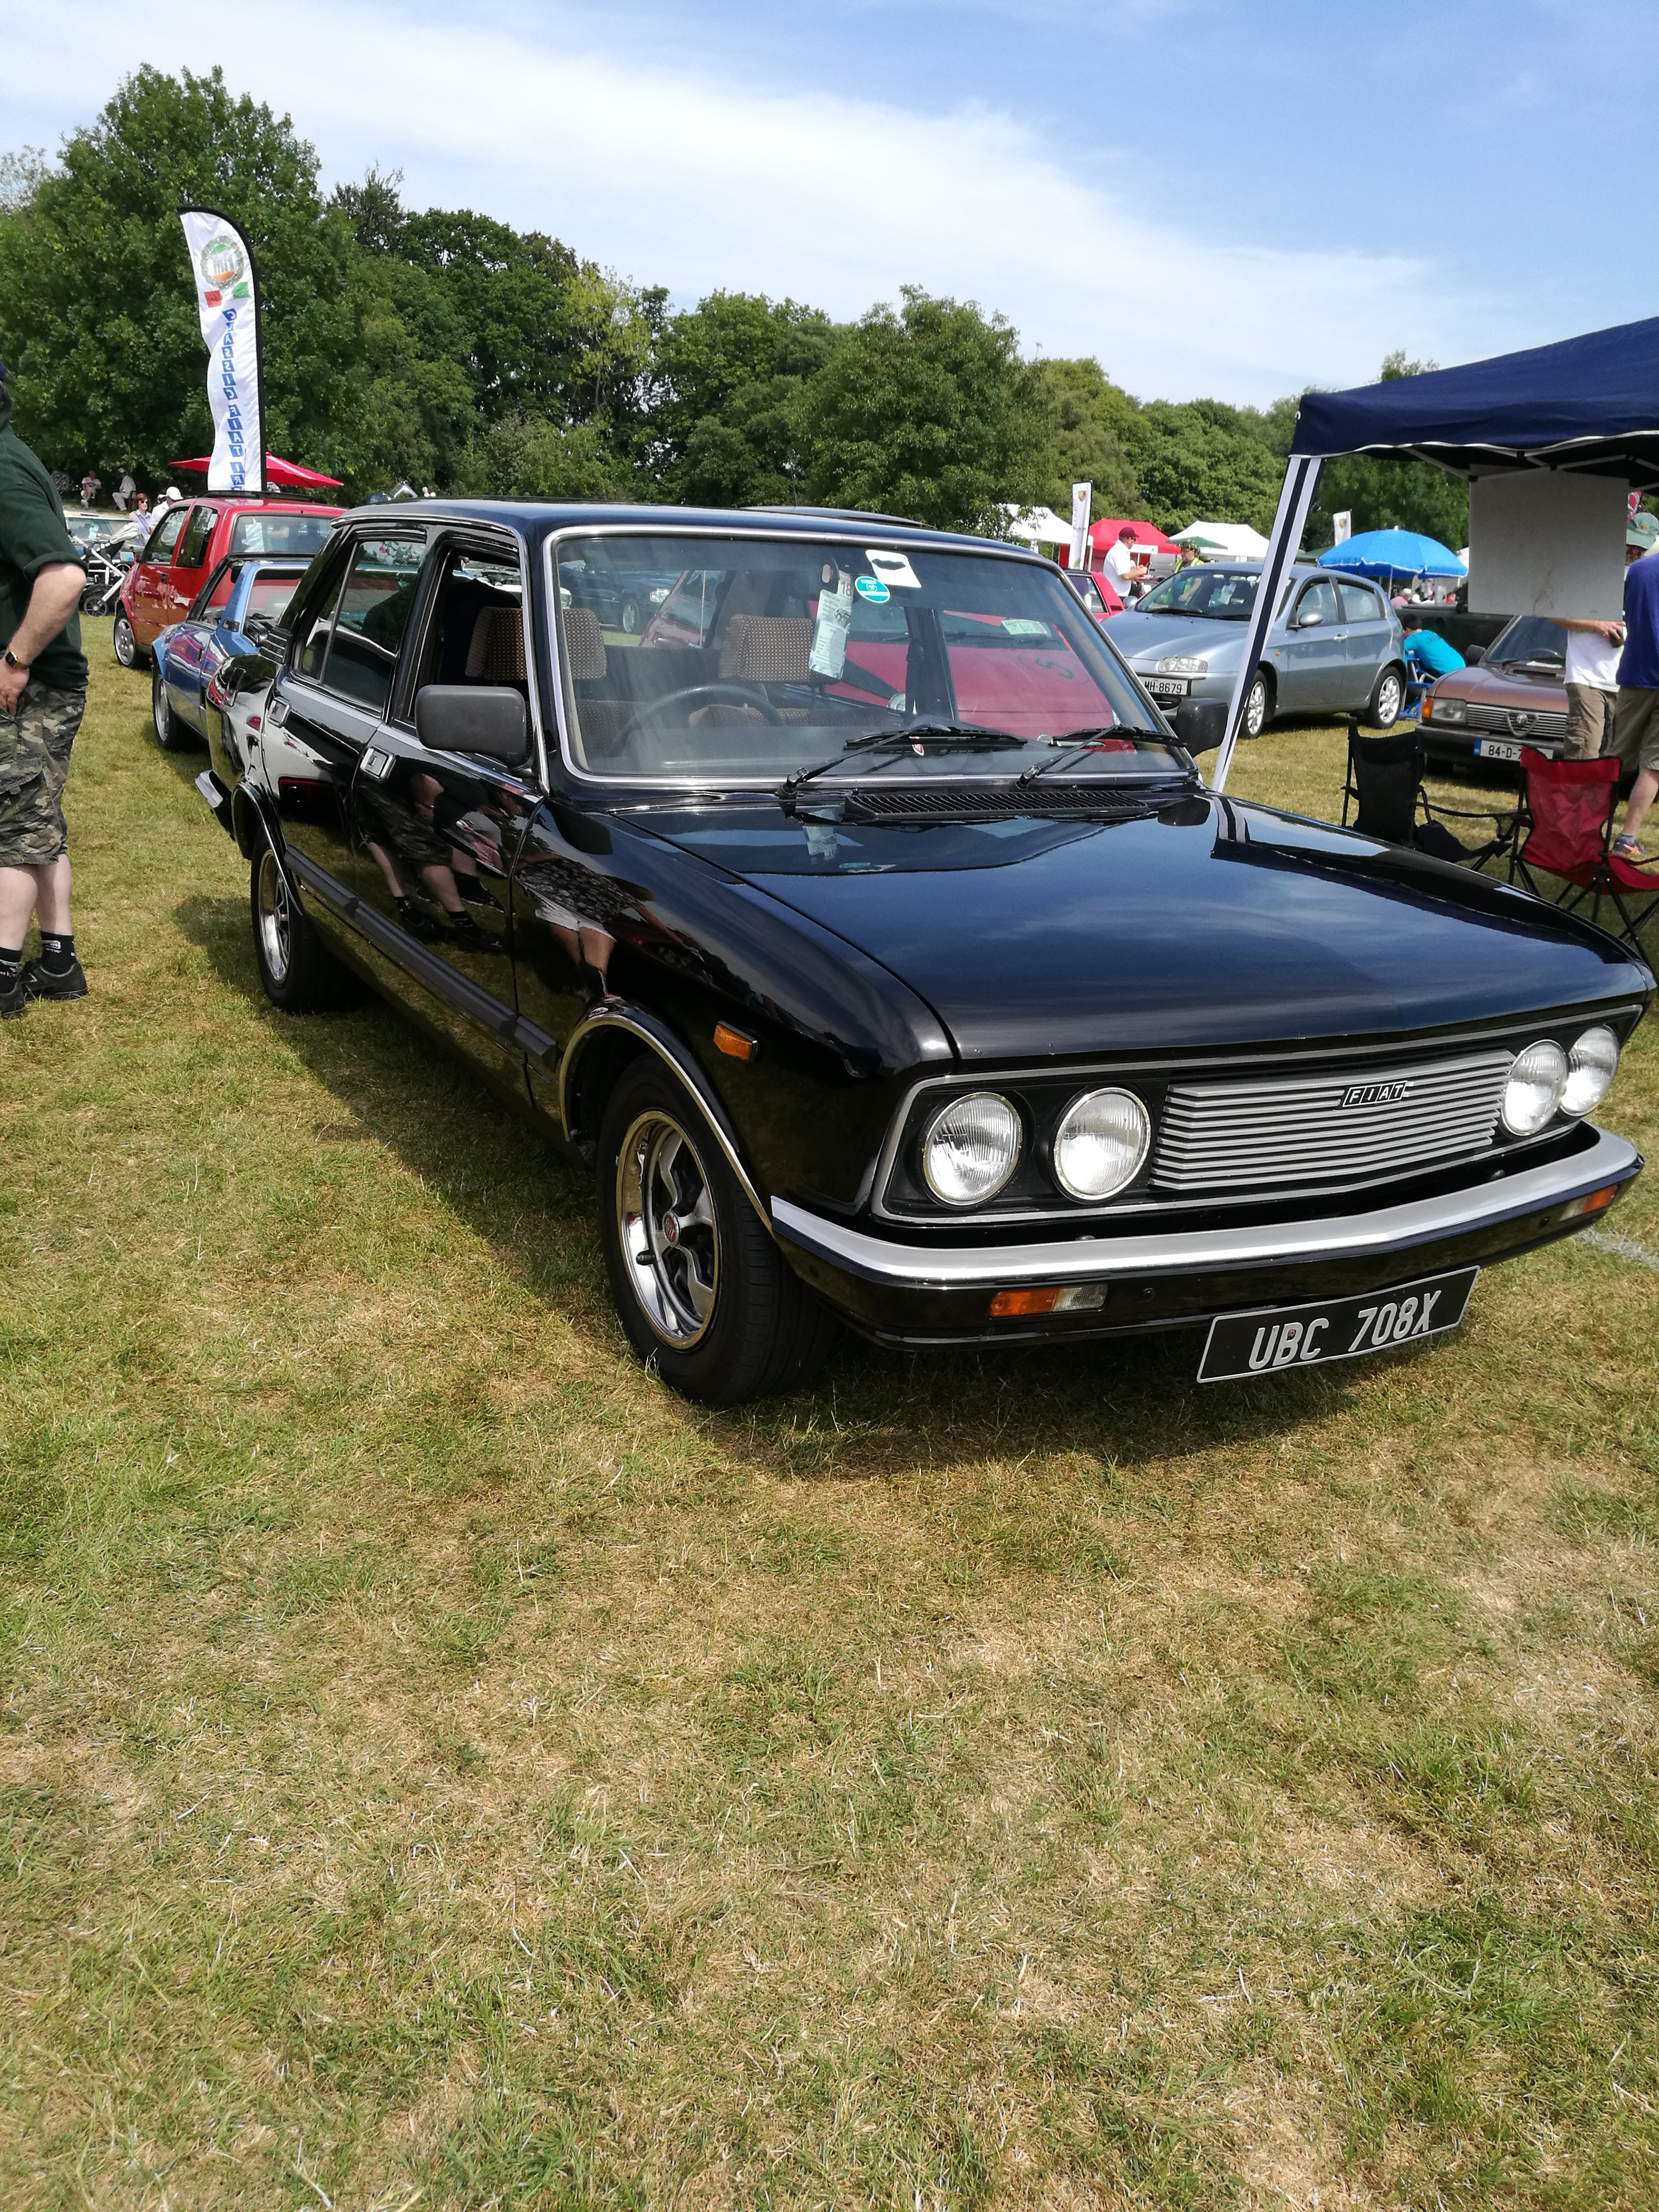 The only Fiat 132 on the stand gleaming in the sun